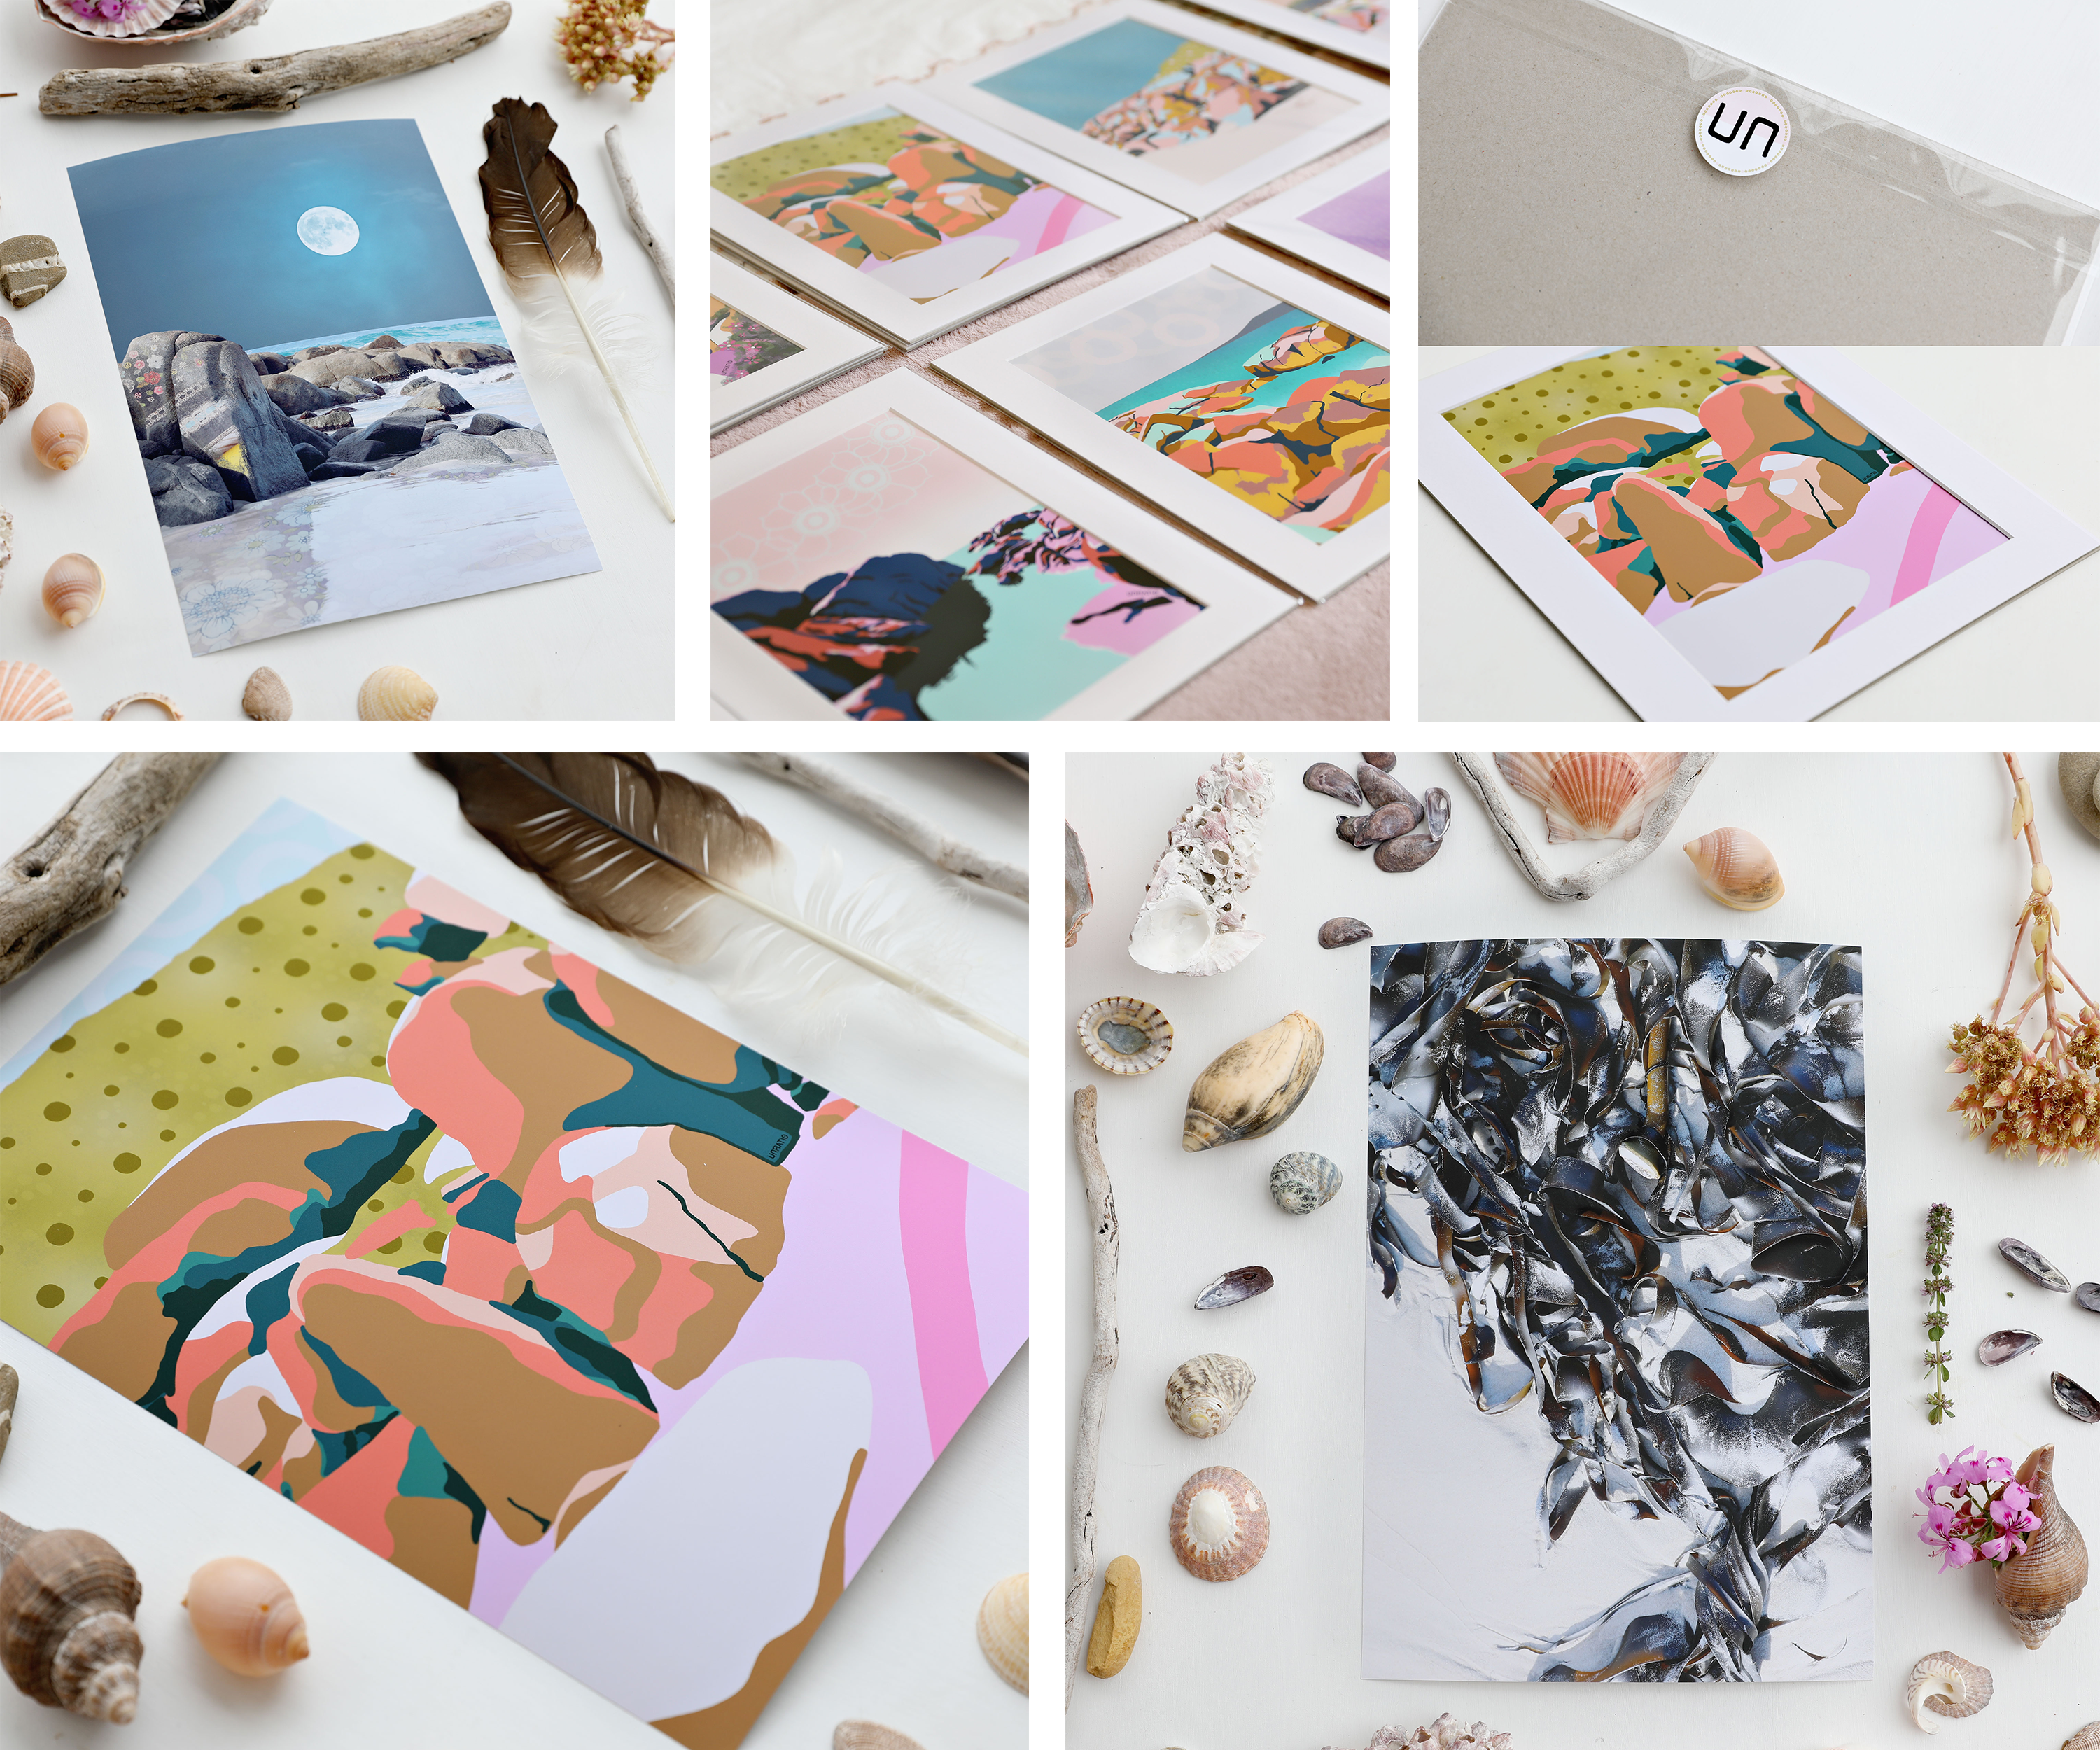 Upclose details of bright retro style beach illustrations art prints packaged for retail sale.